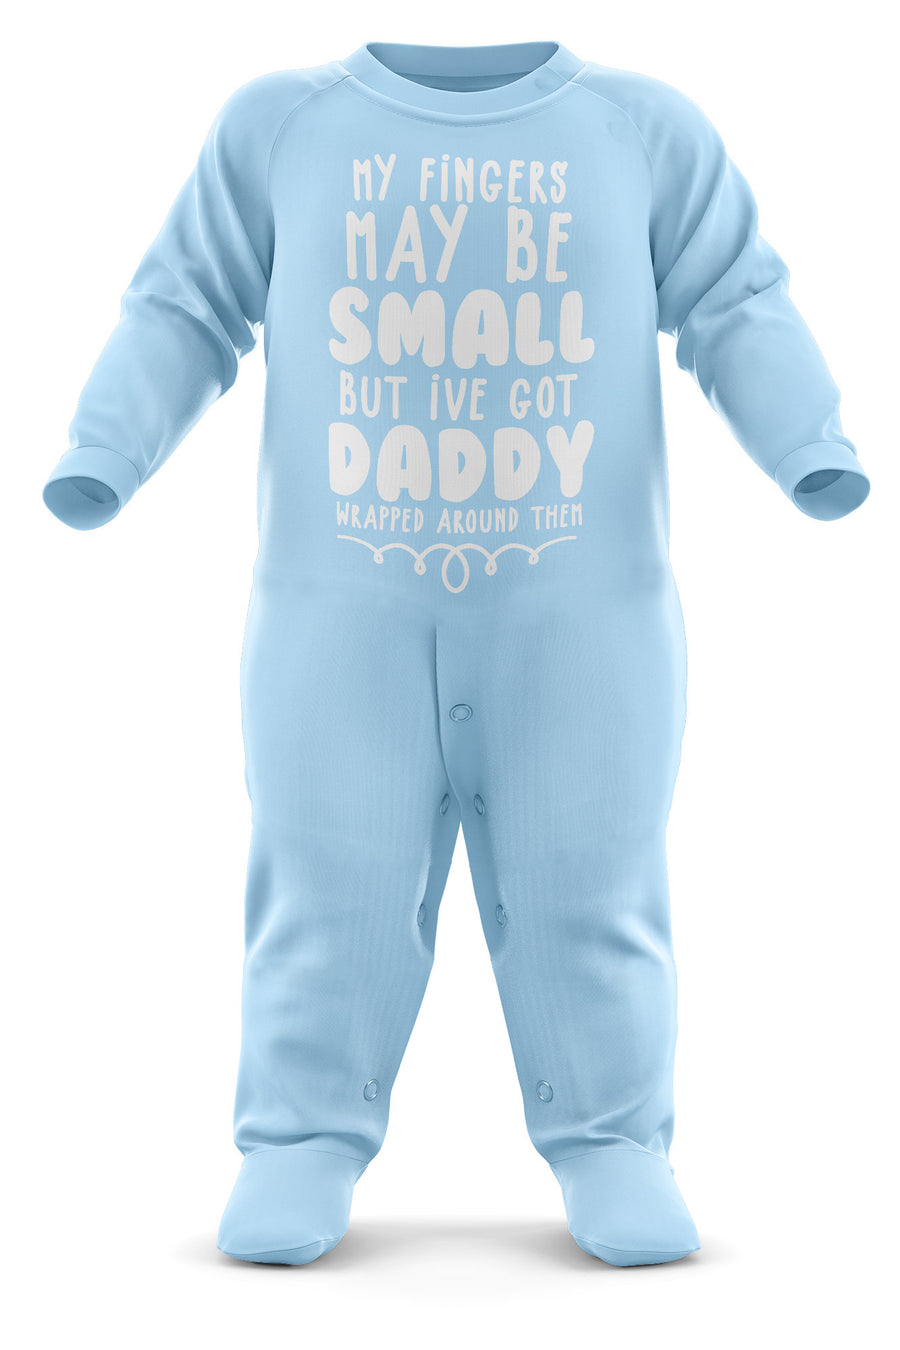 My Fingers May Be Small Personalised Baby Grow - Your Name Personalised Baby Romper - Custom Text Babygrow Romper Suit - Custom Name Newborn Baby One Piece